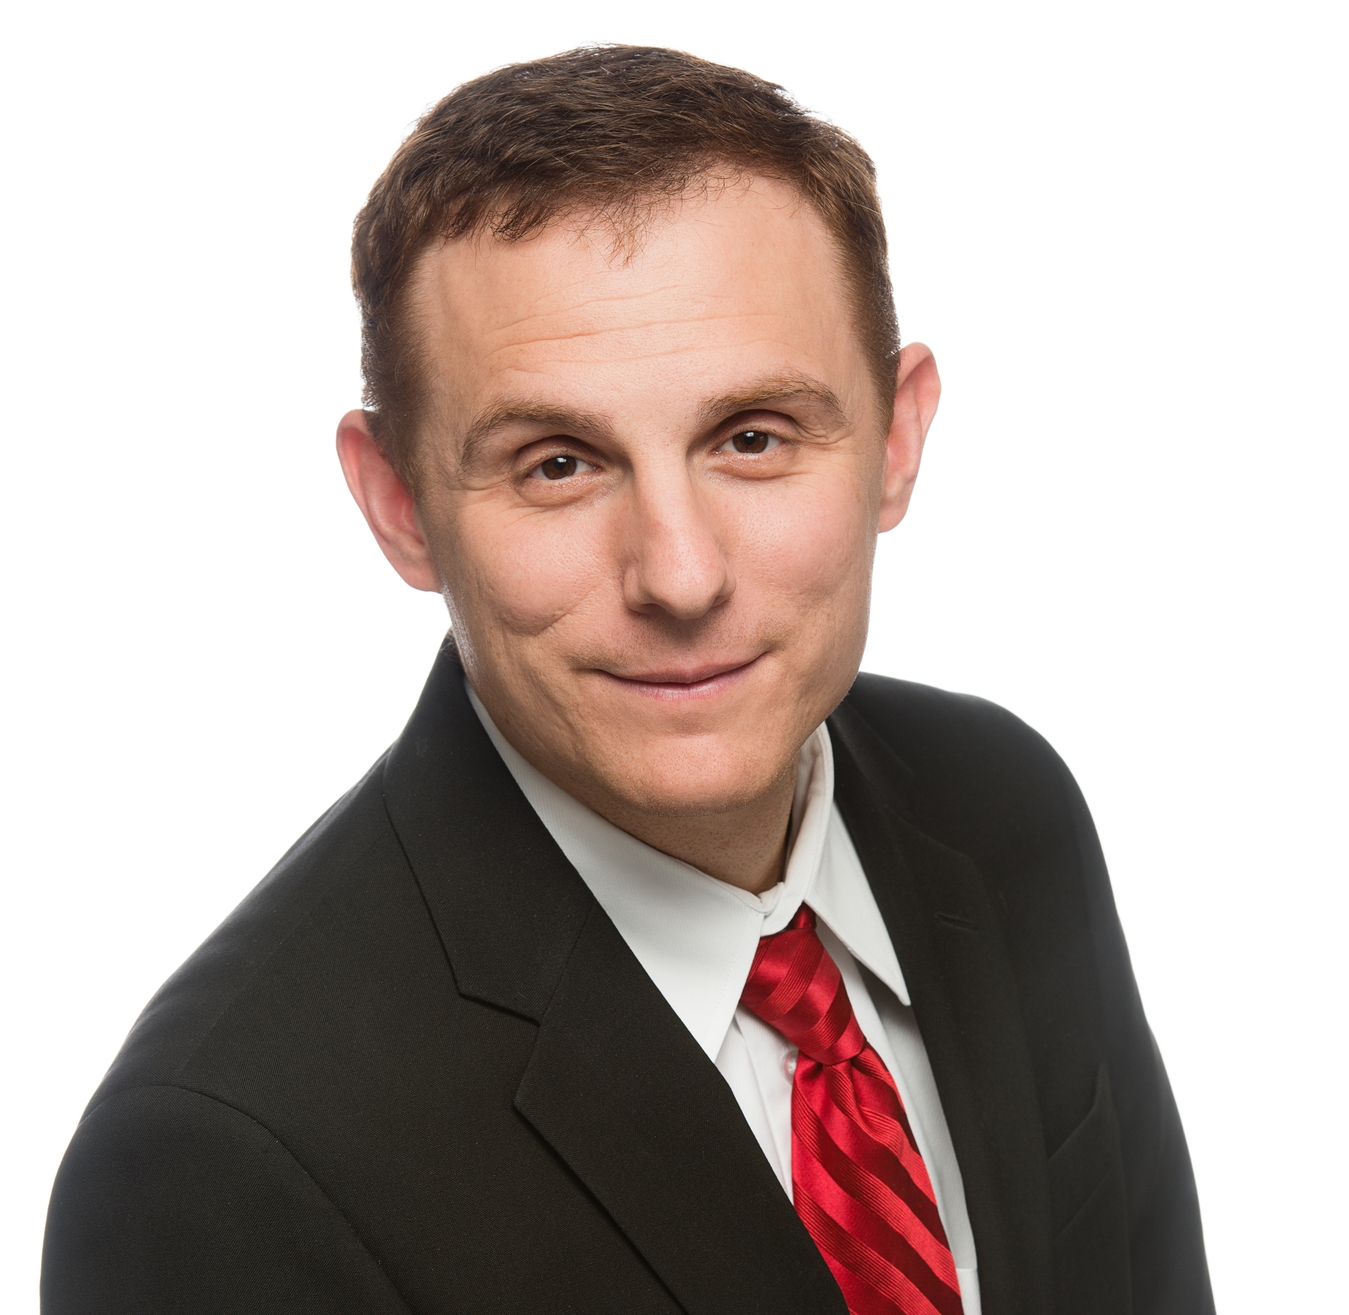 central erin property management Tony Peros